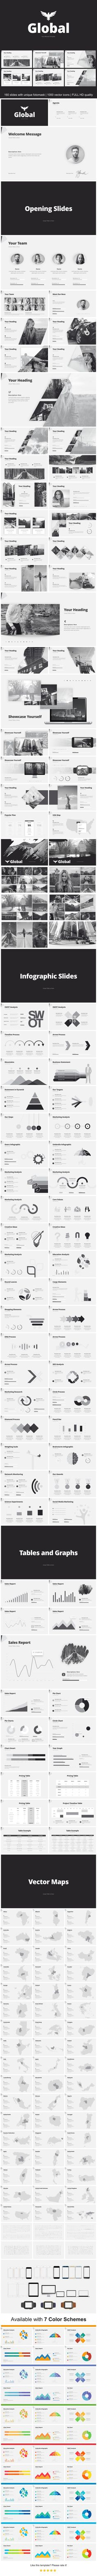 Minimal - #Business #PowerPoint #Templates Download here: https://graphicriver.net/item/minimal/19530509?ref=alena994